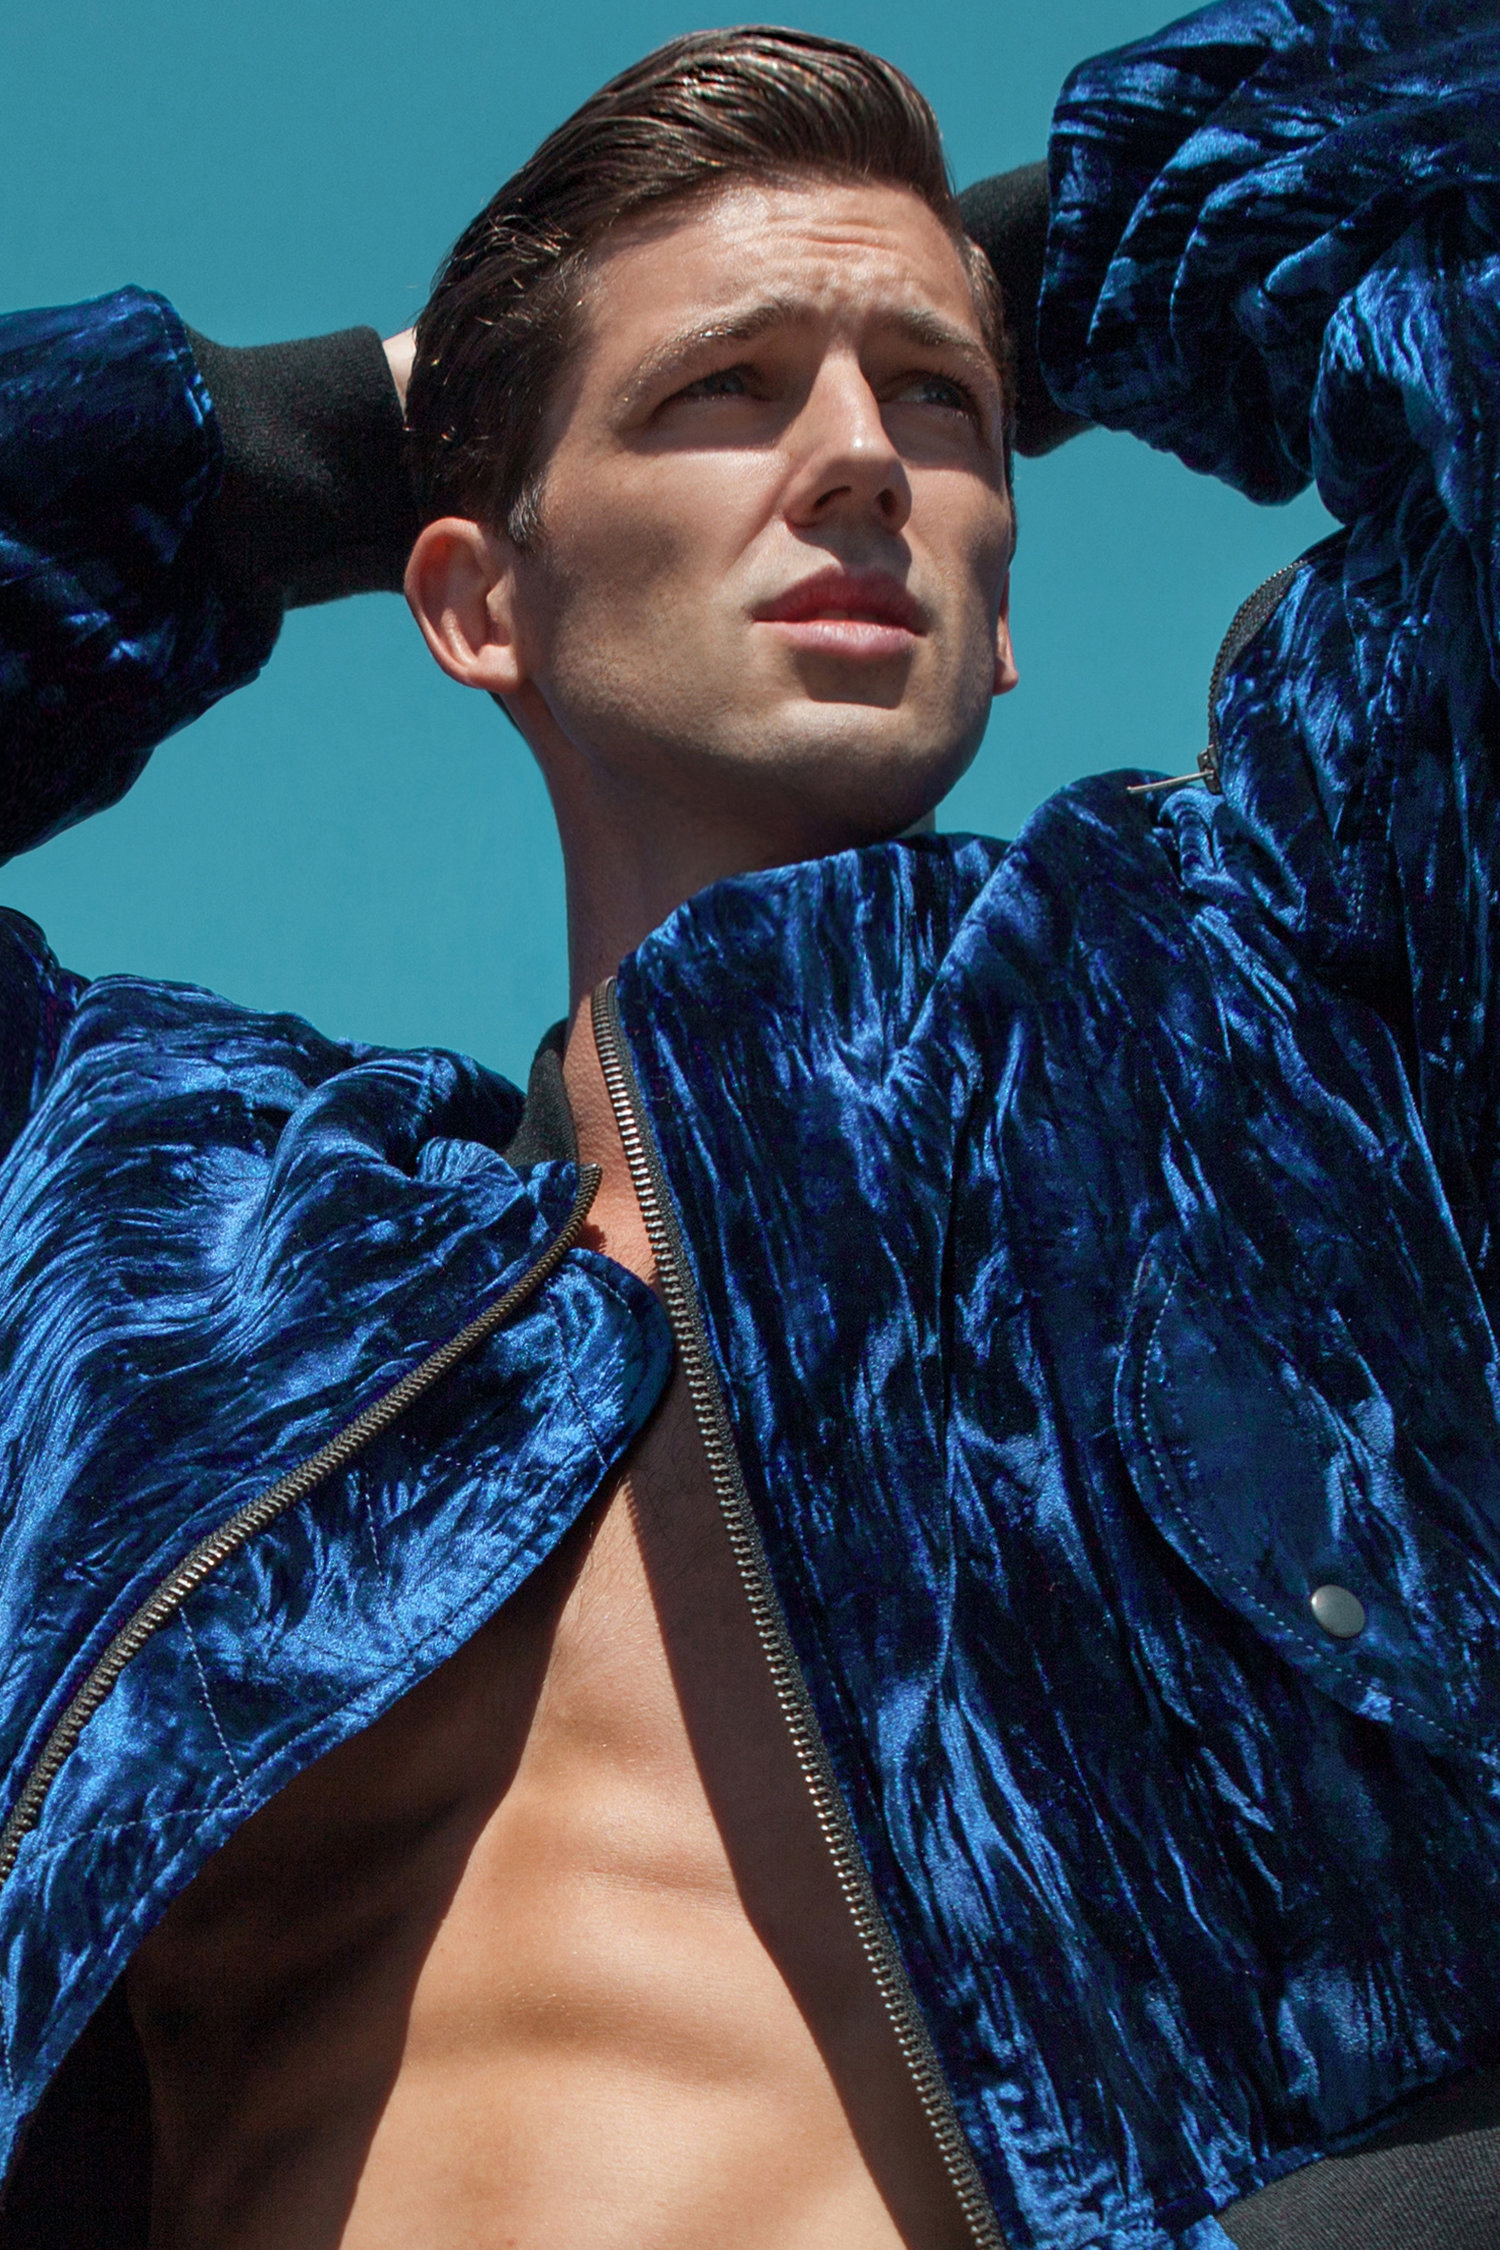 Adon Exclusive: Model Adam Michael Waldo By Jamie Mann